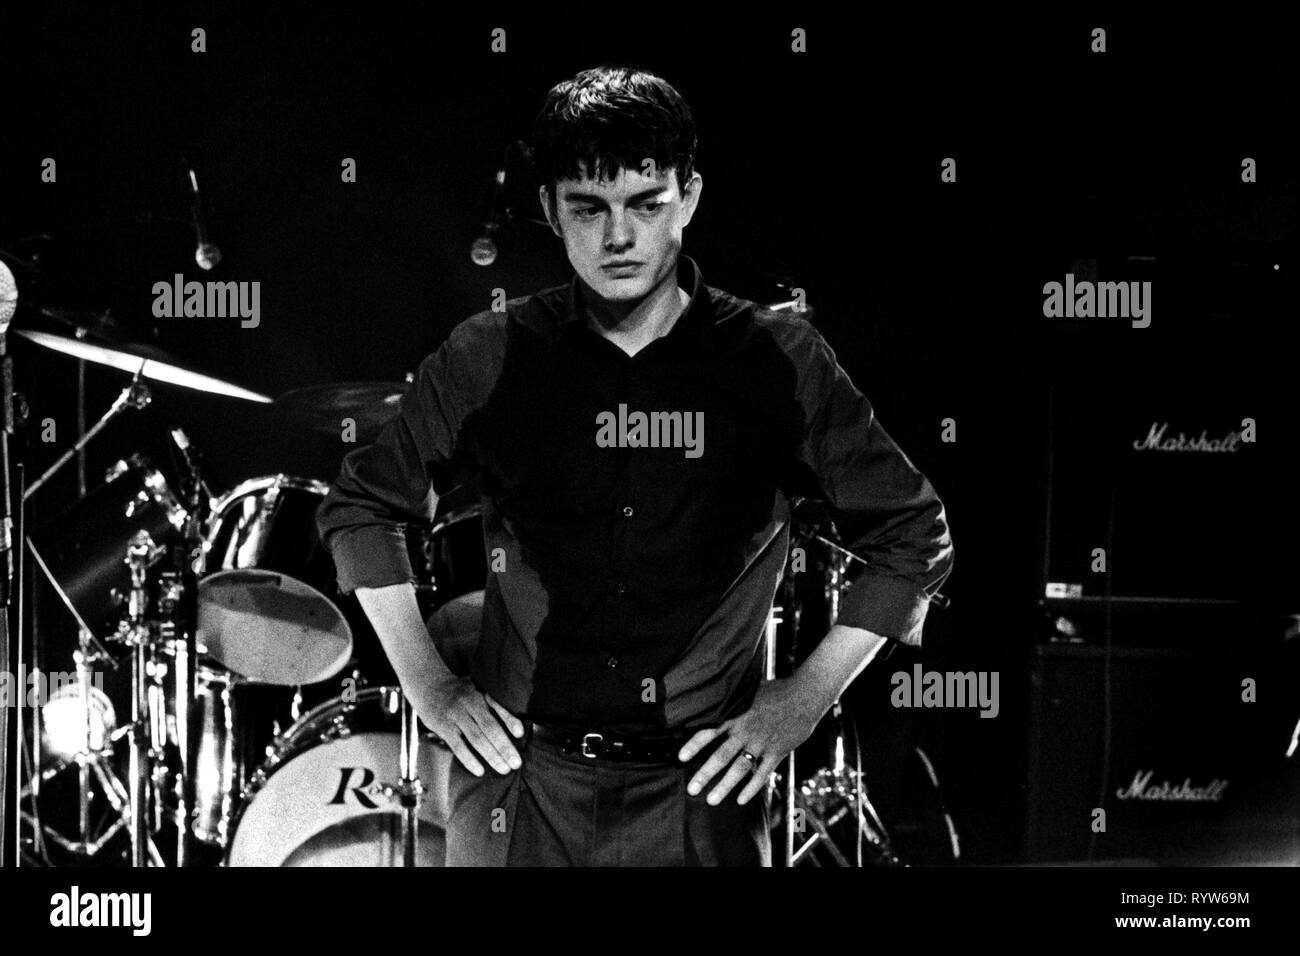 Sam Riley Joy Division New BW POSTER